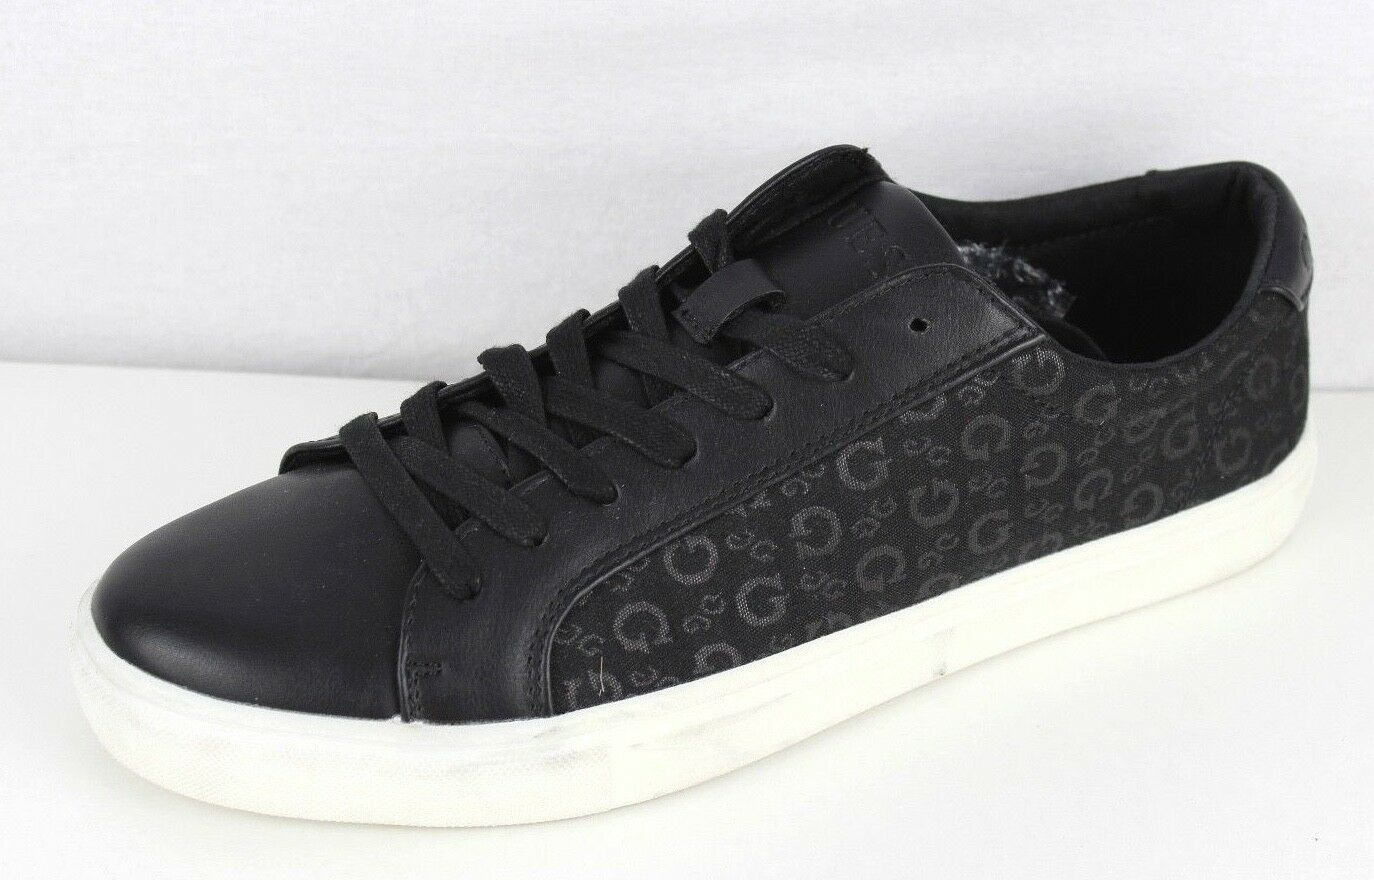 Guess style gm terca men's shoes sneakers black leather signature size 10 M